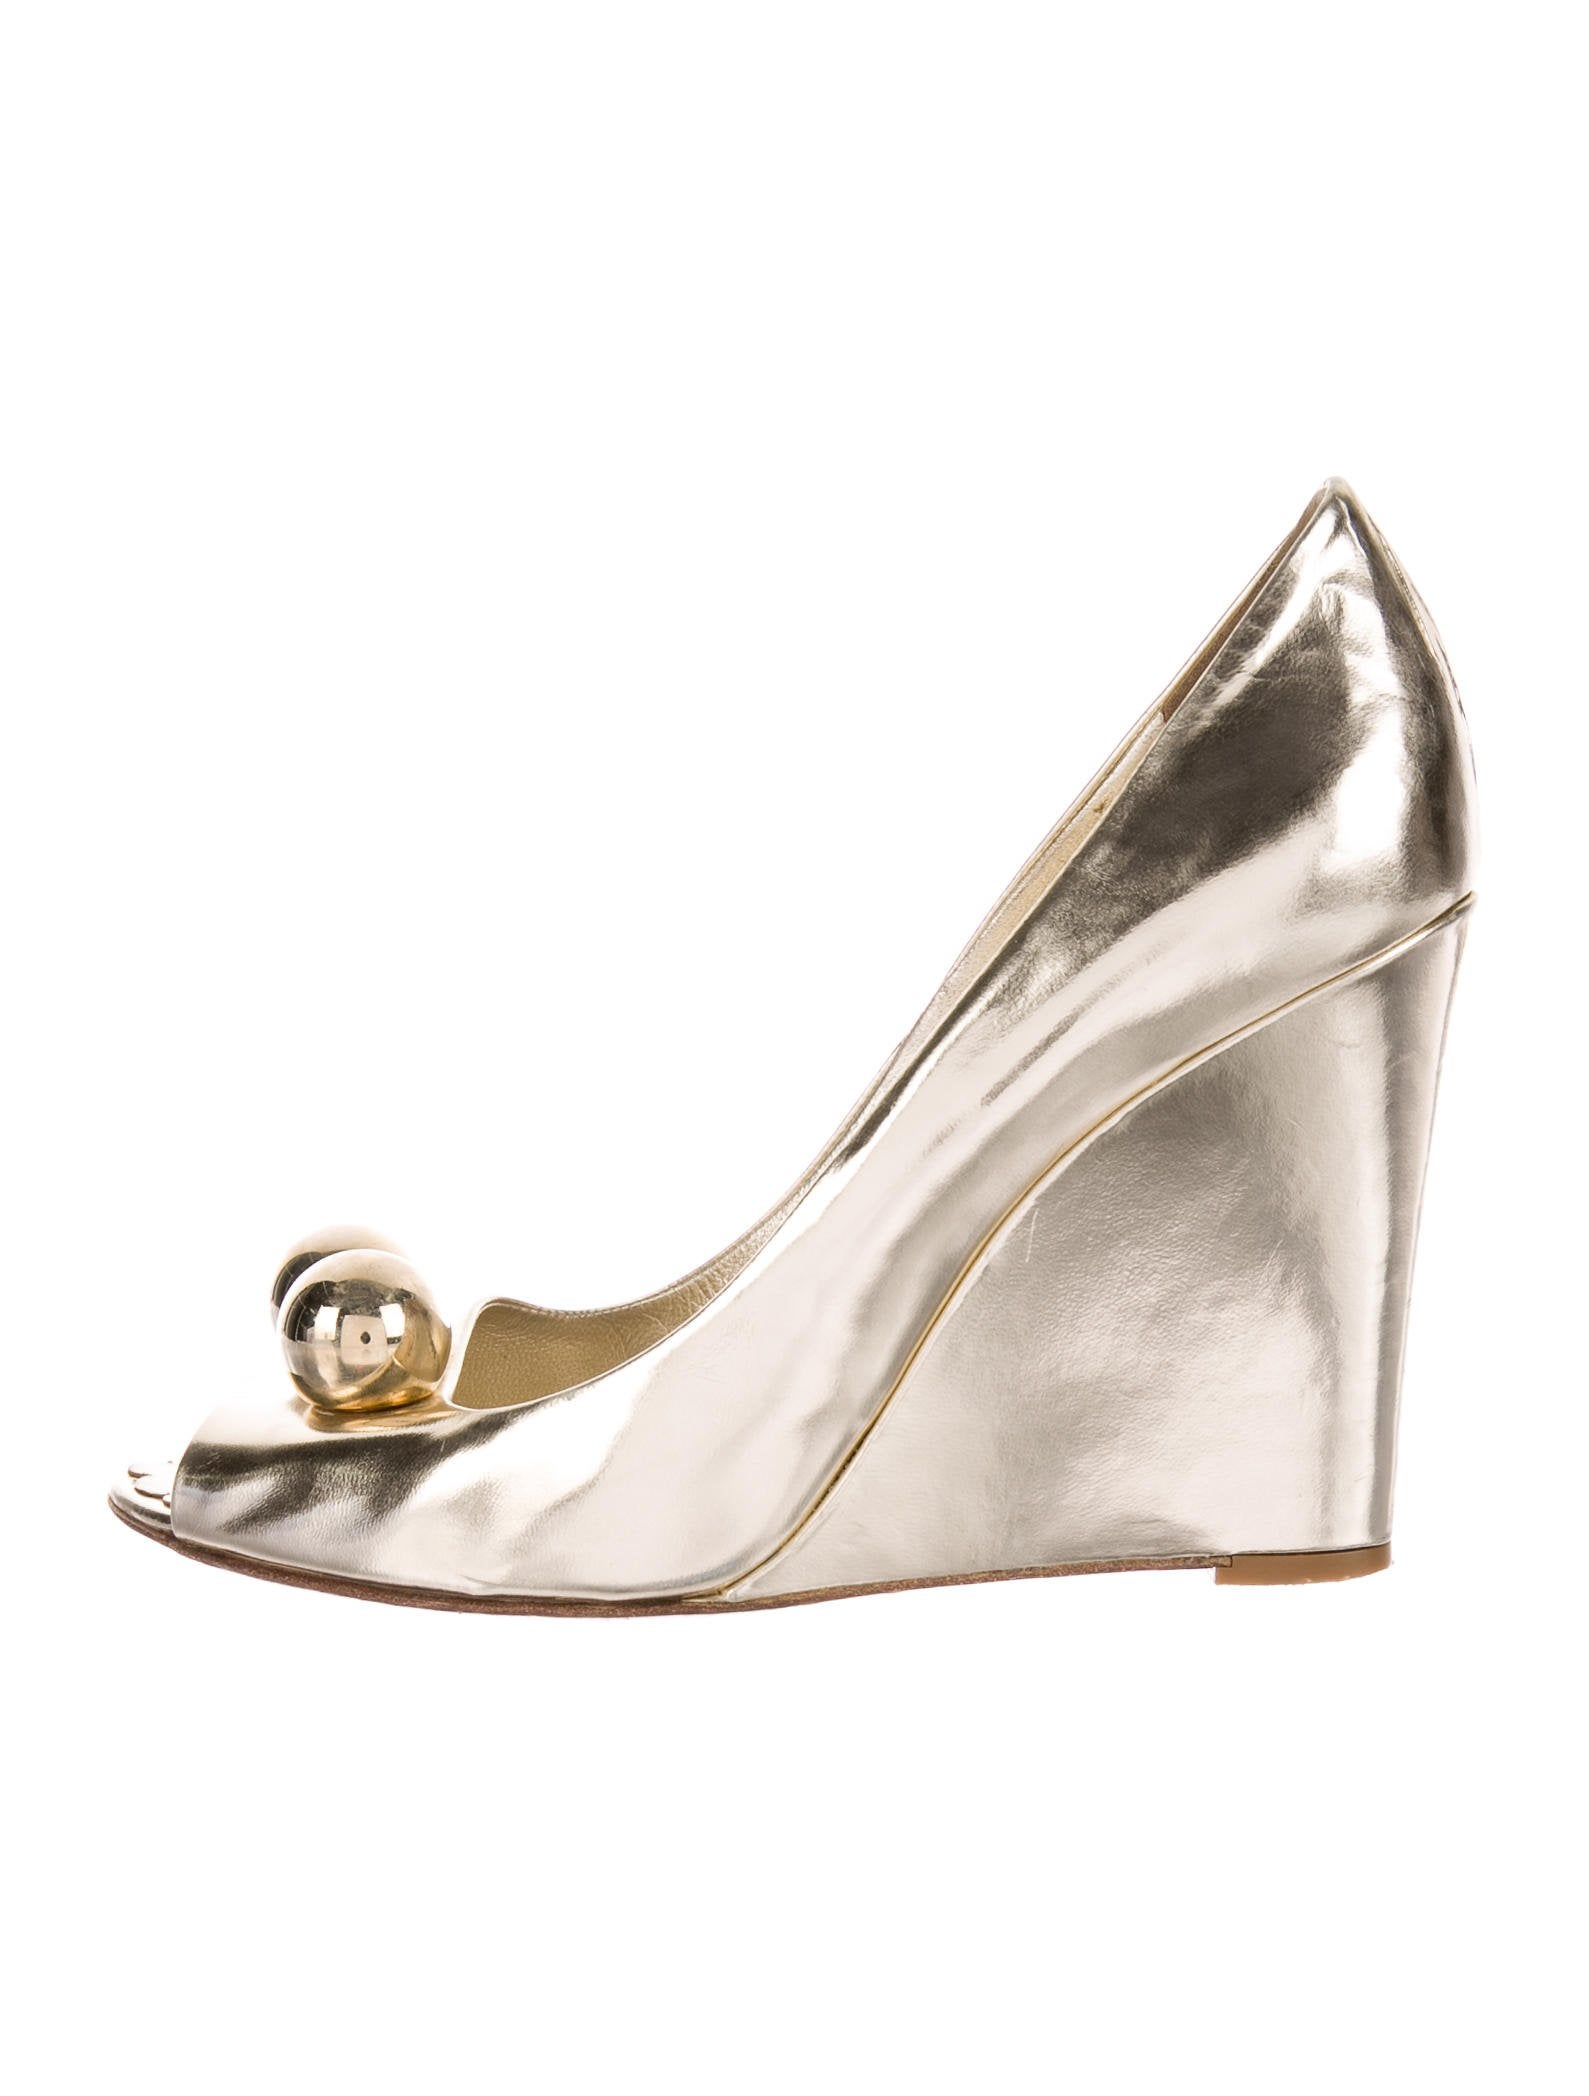 sale best wholesale reliable cheap online Moschino Cheap and Chic Metallic Peep-Toe Wedges fake online very cheap price V4ni0T